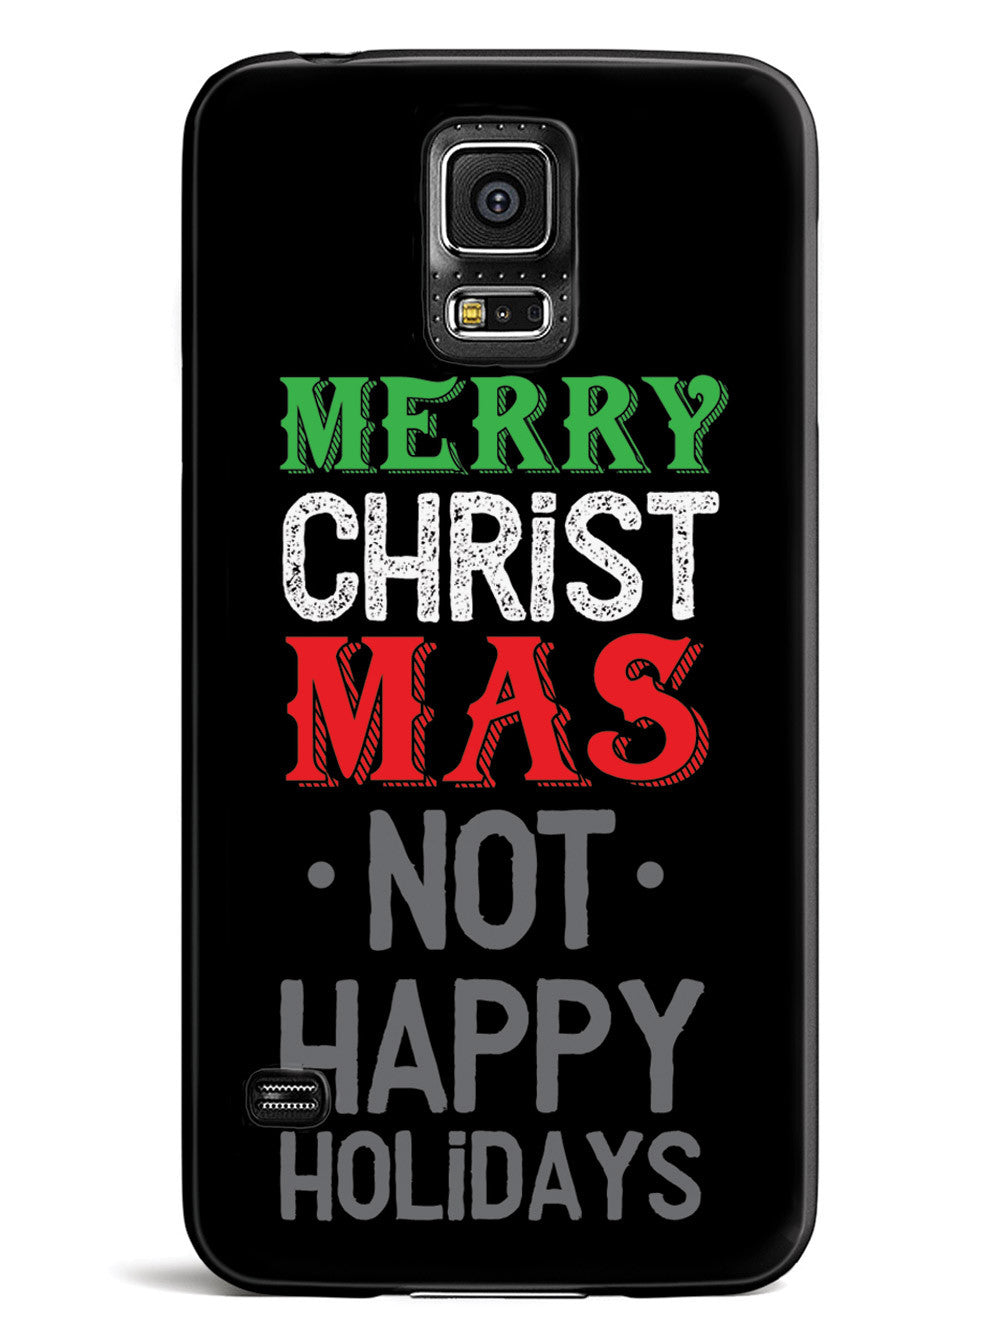 It's Merry Christmas not Happy Holidays Case